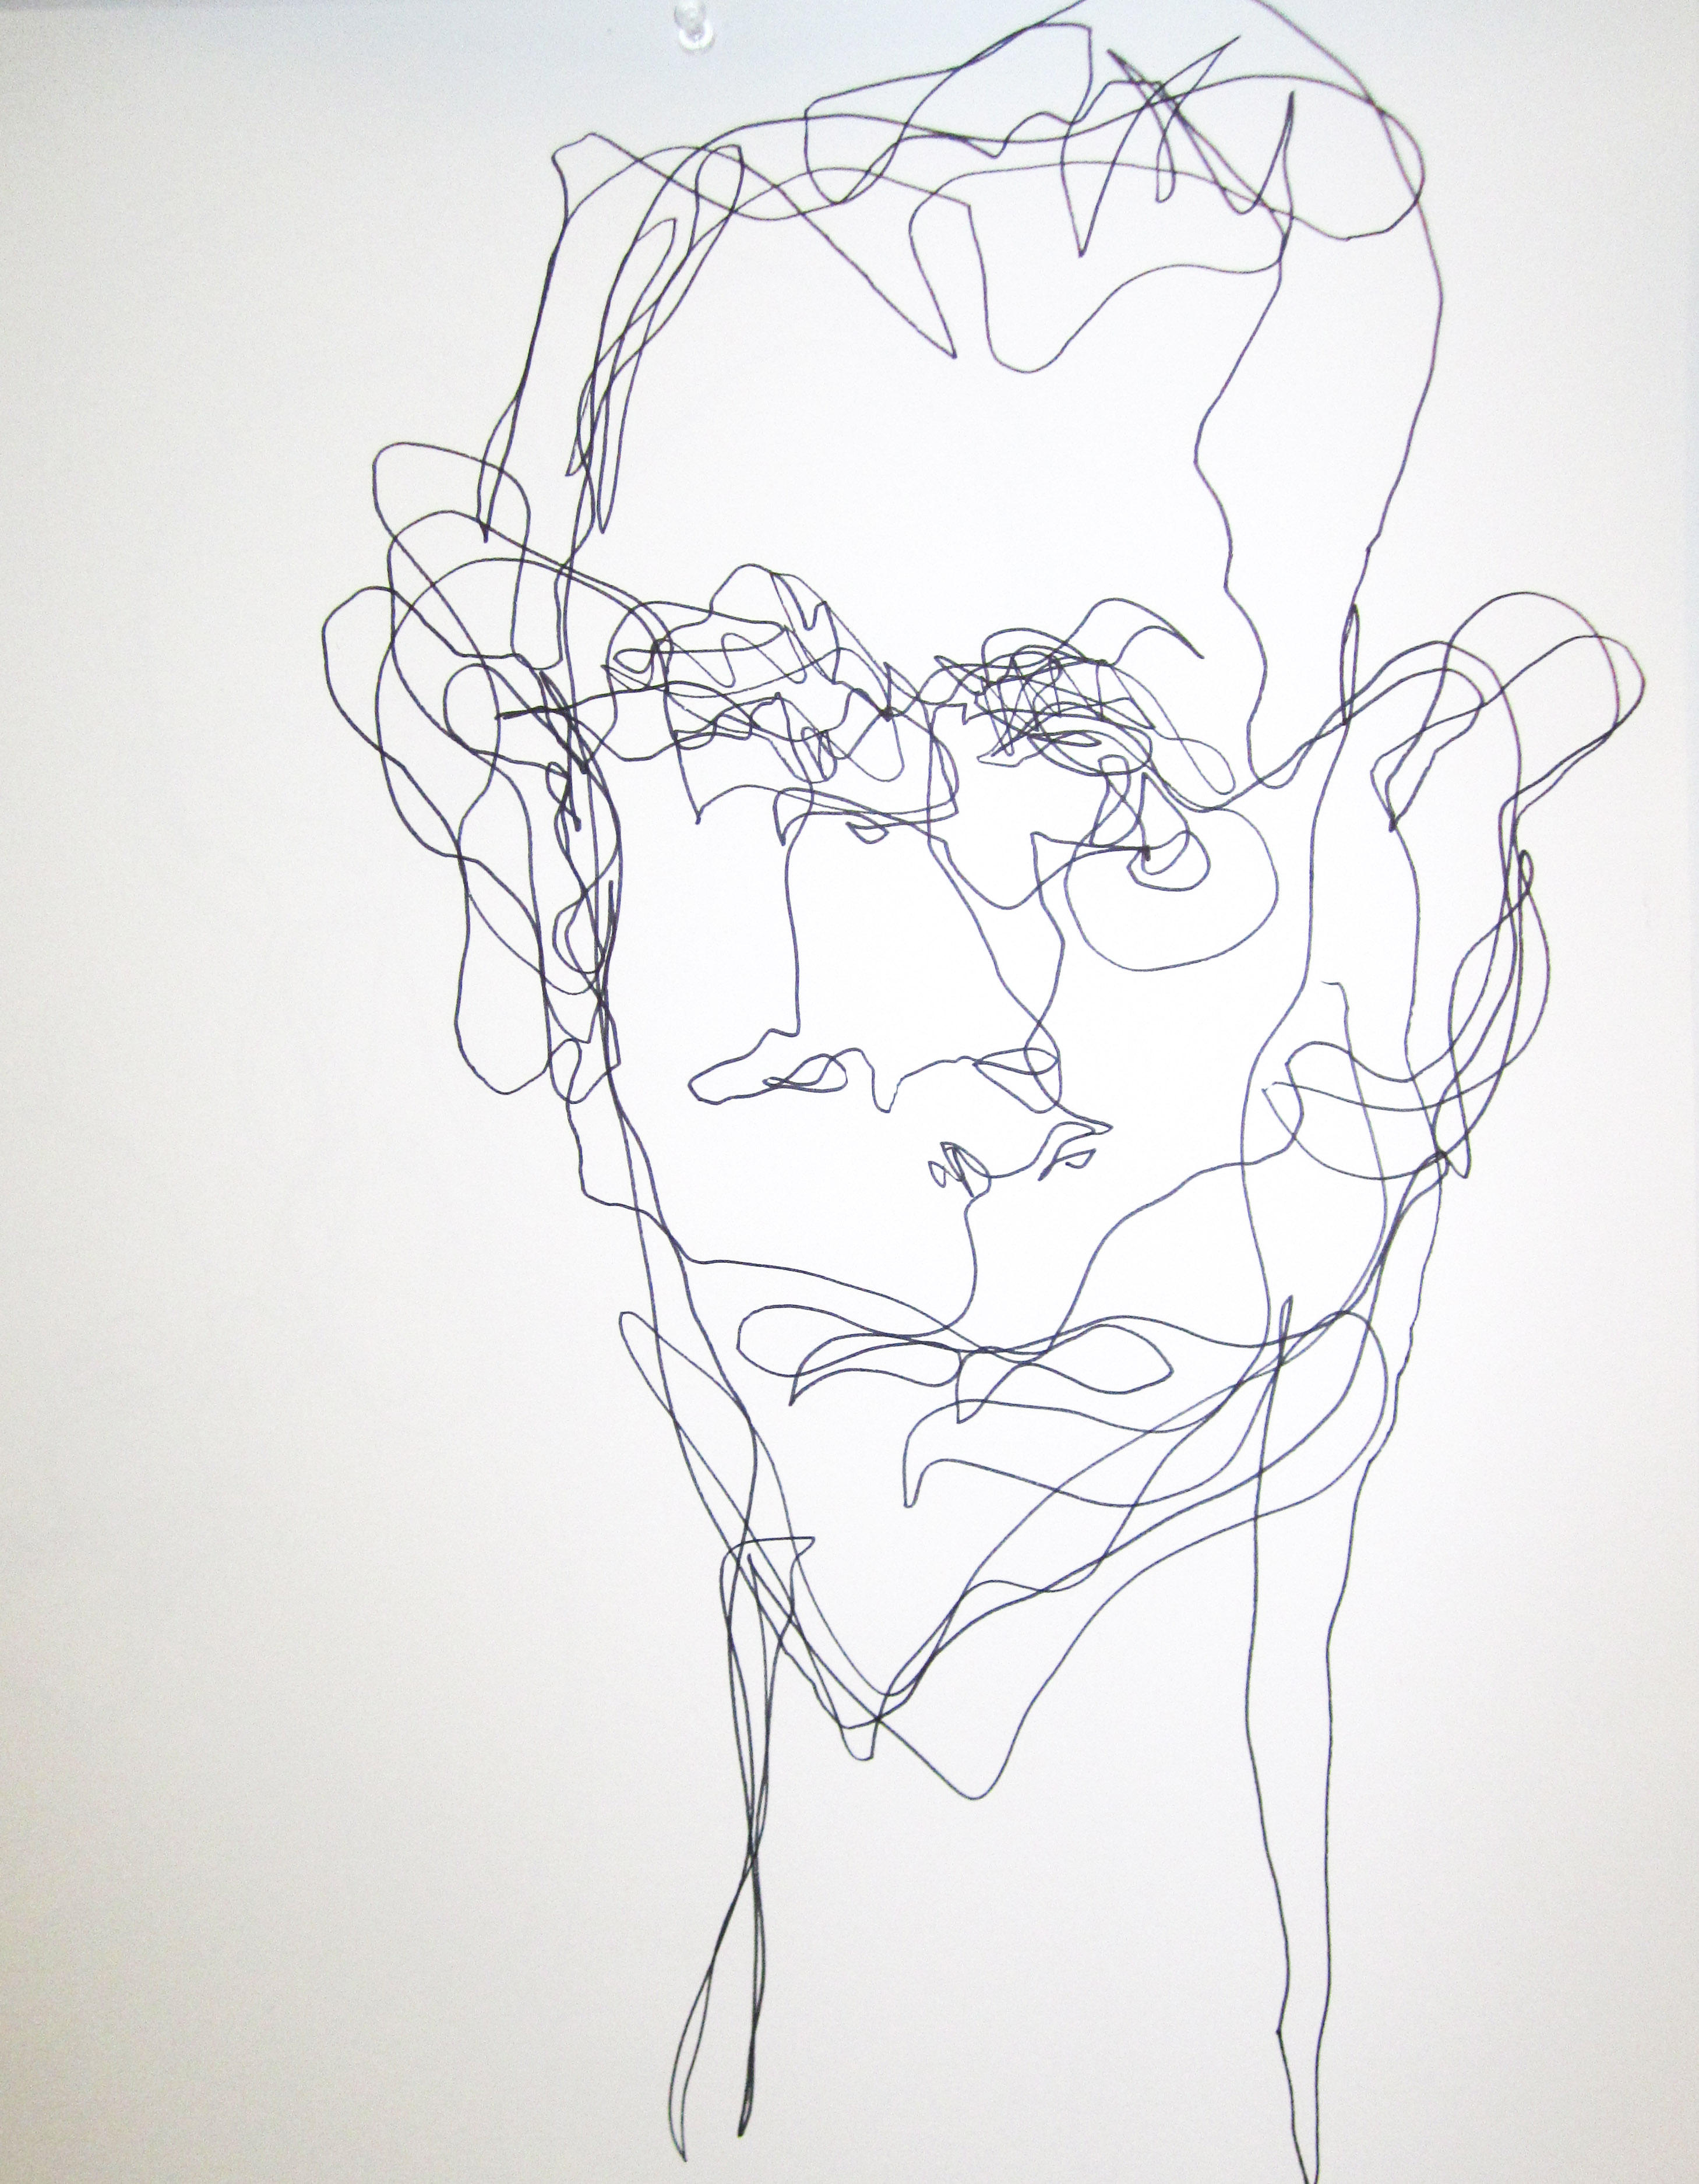 Contour Line Drawing With Wire : Design footwear consulting by markus